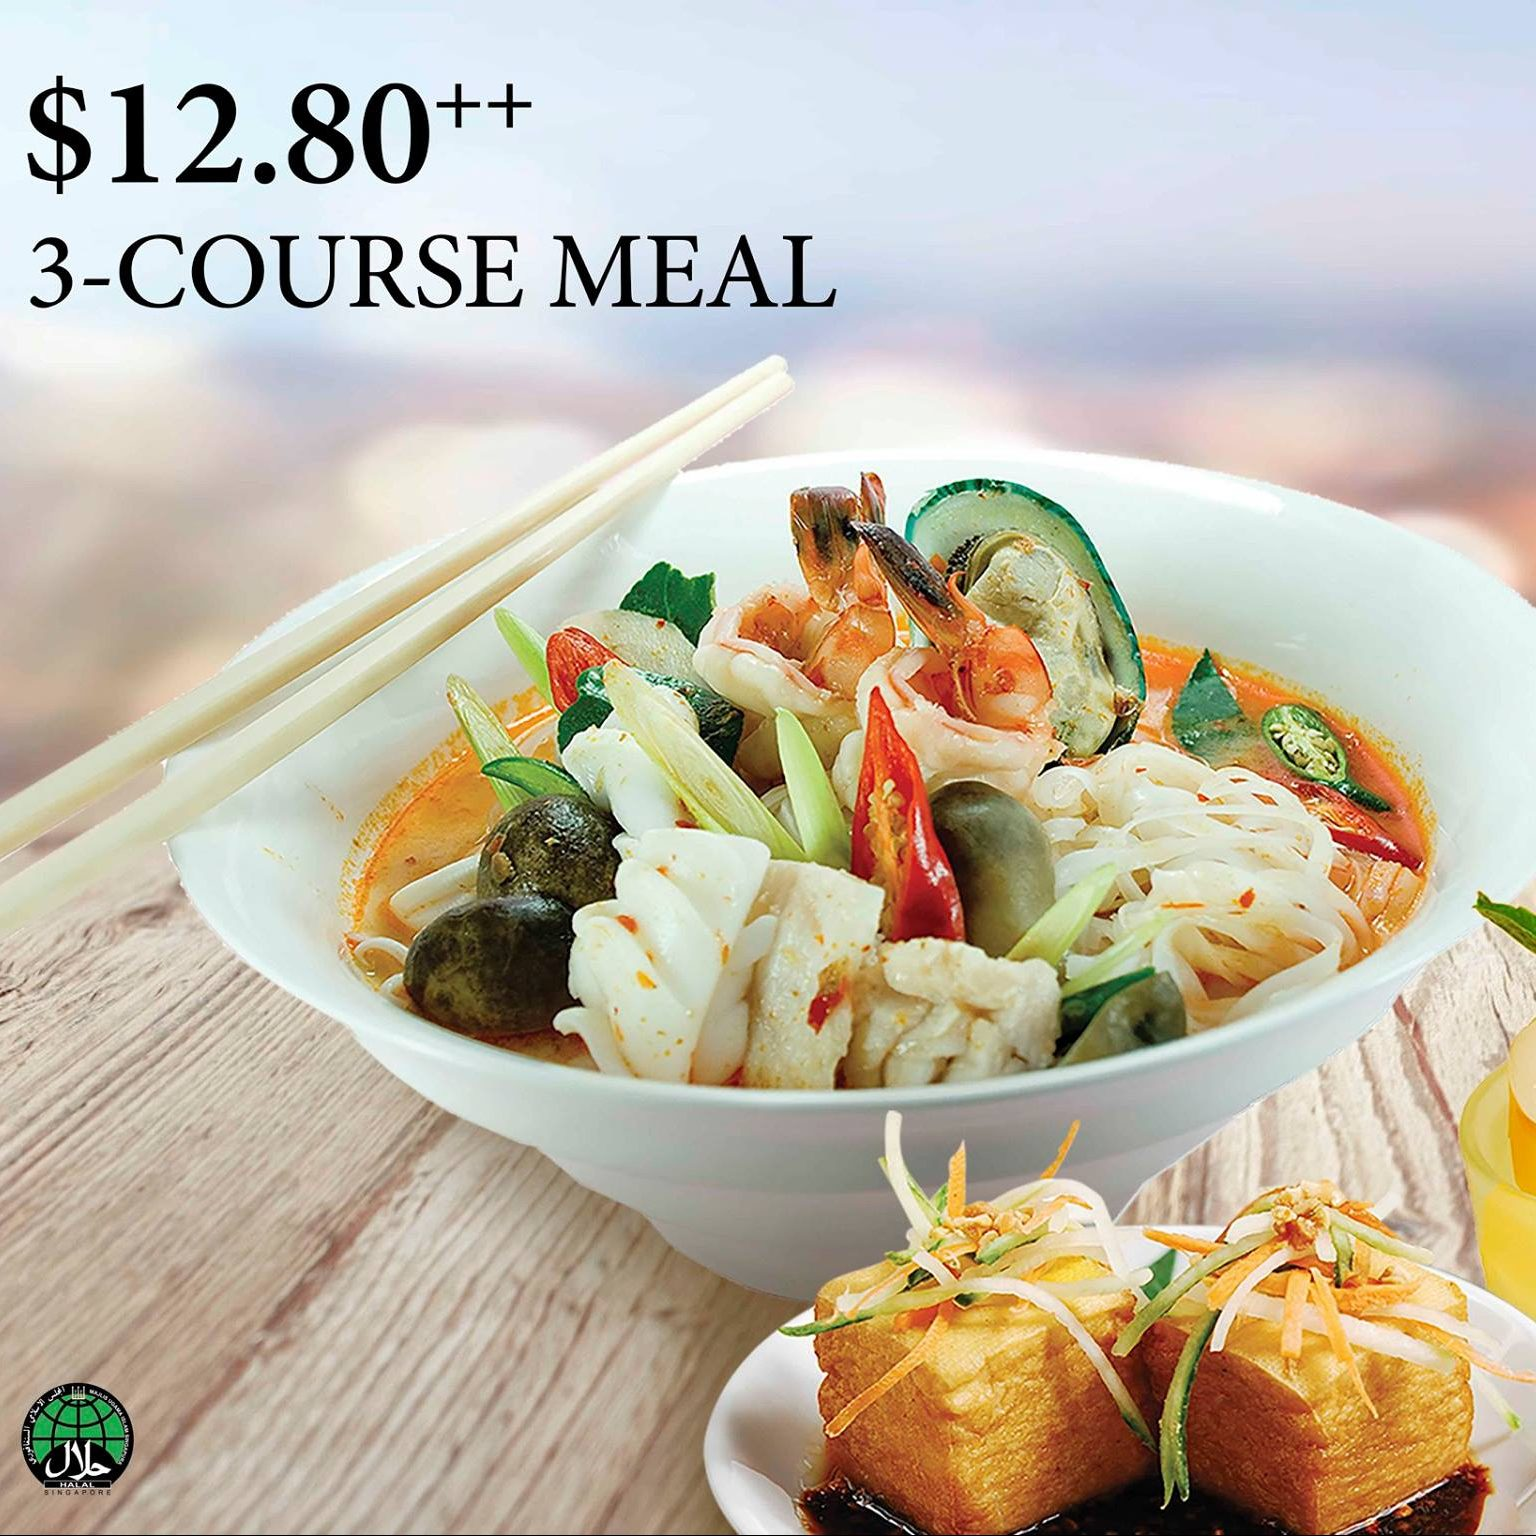 Bali Thai Weekday Specials at $12.80 ends 31 May 2016